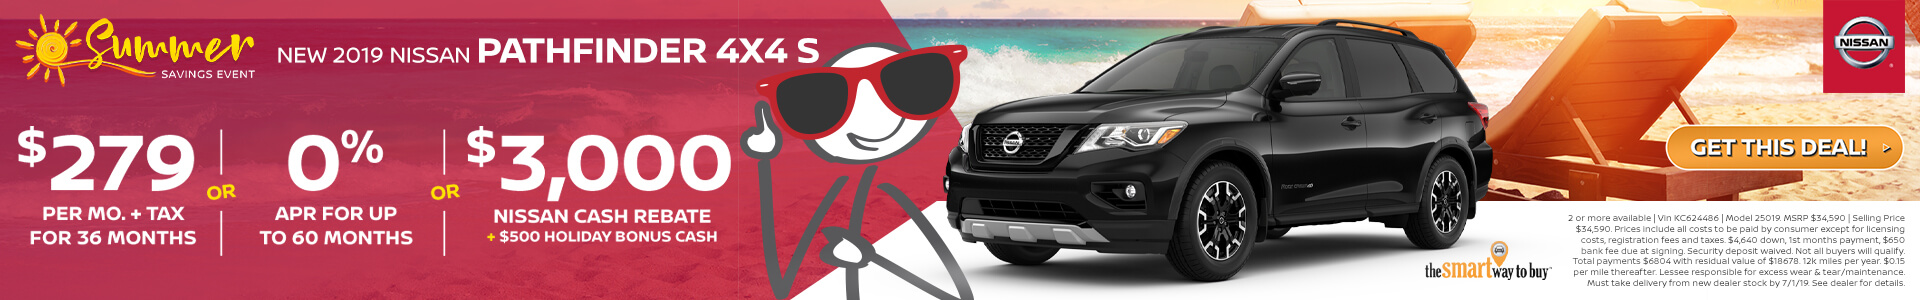 2019 Nissan Pathfinder Lease for $279